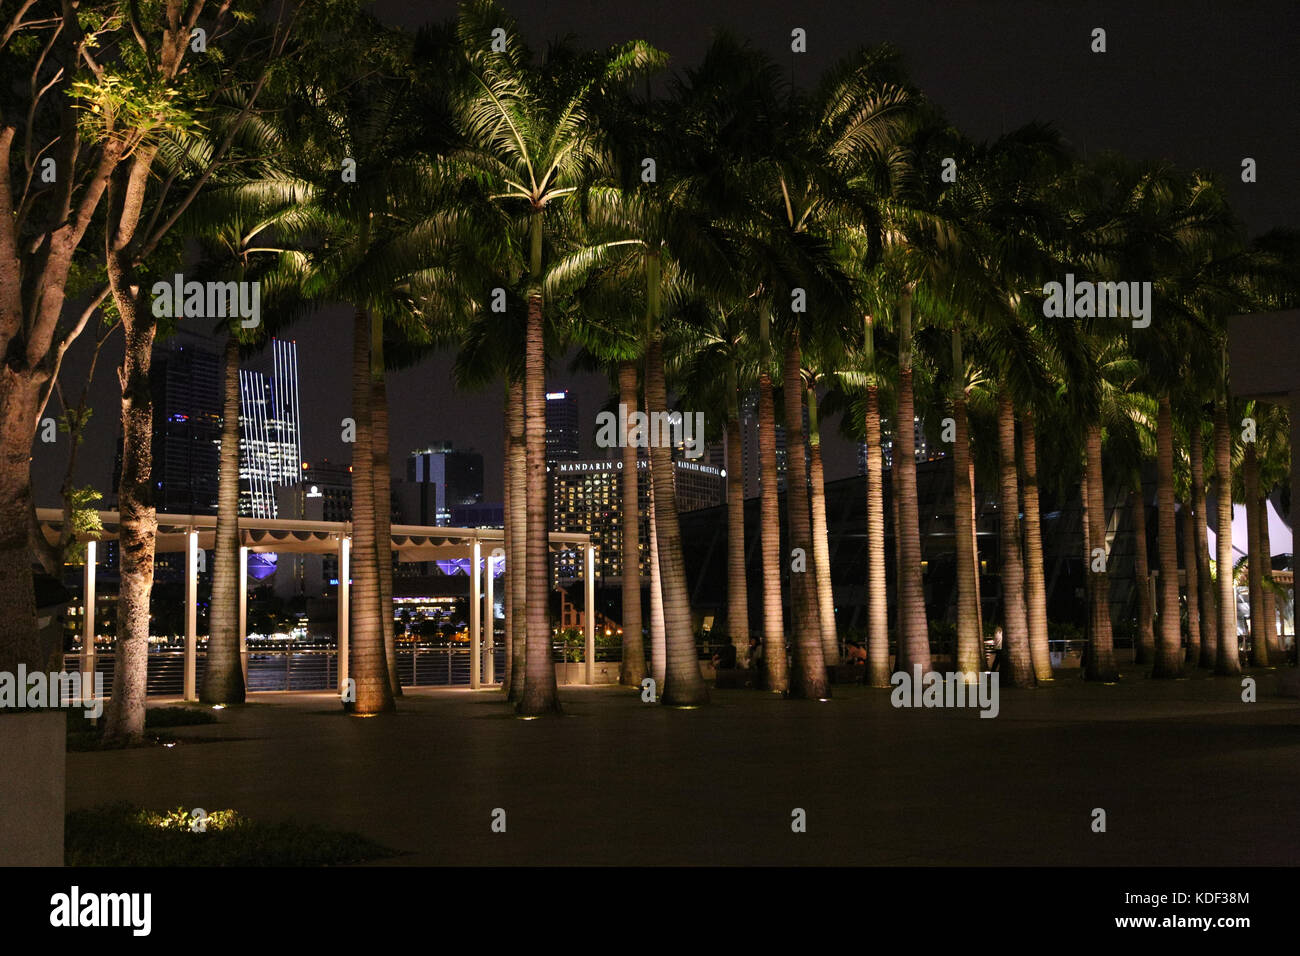 Palm Trees in Marina Bay Sands, Singapore - Stock Image